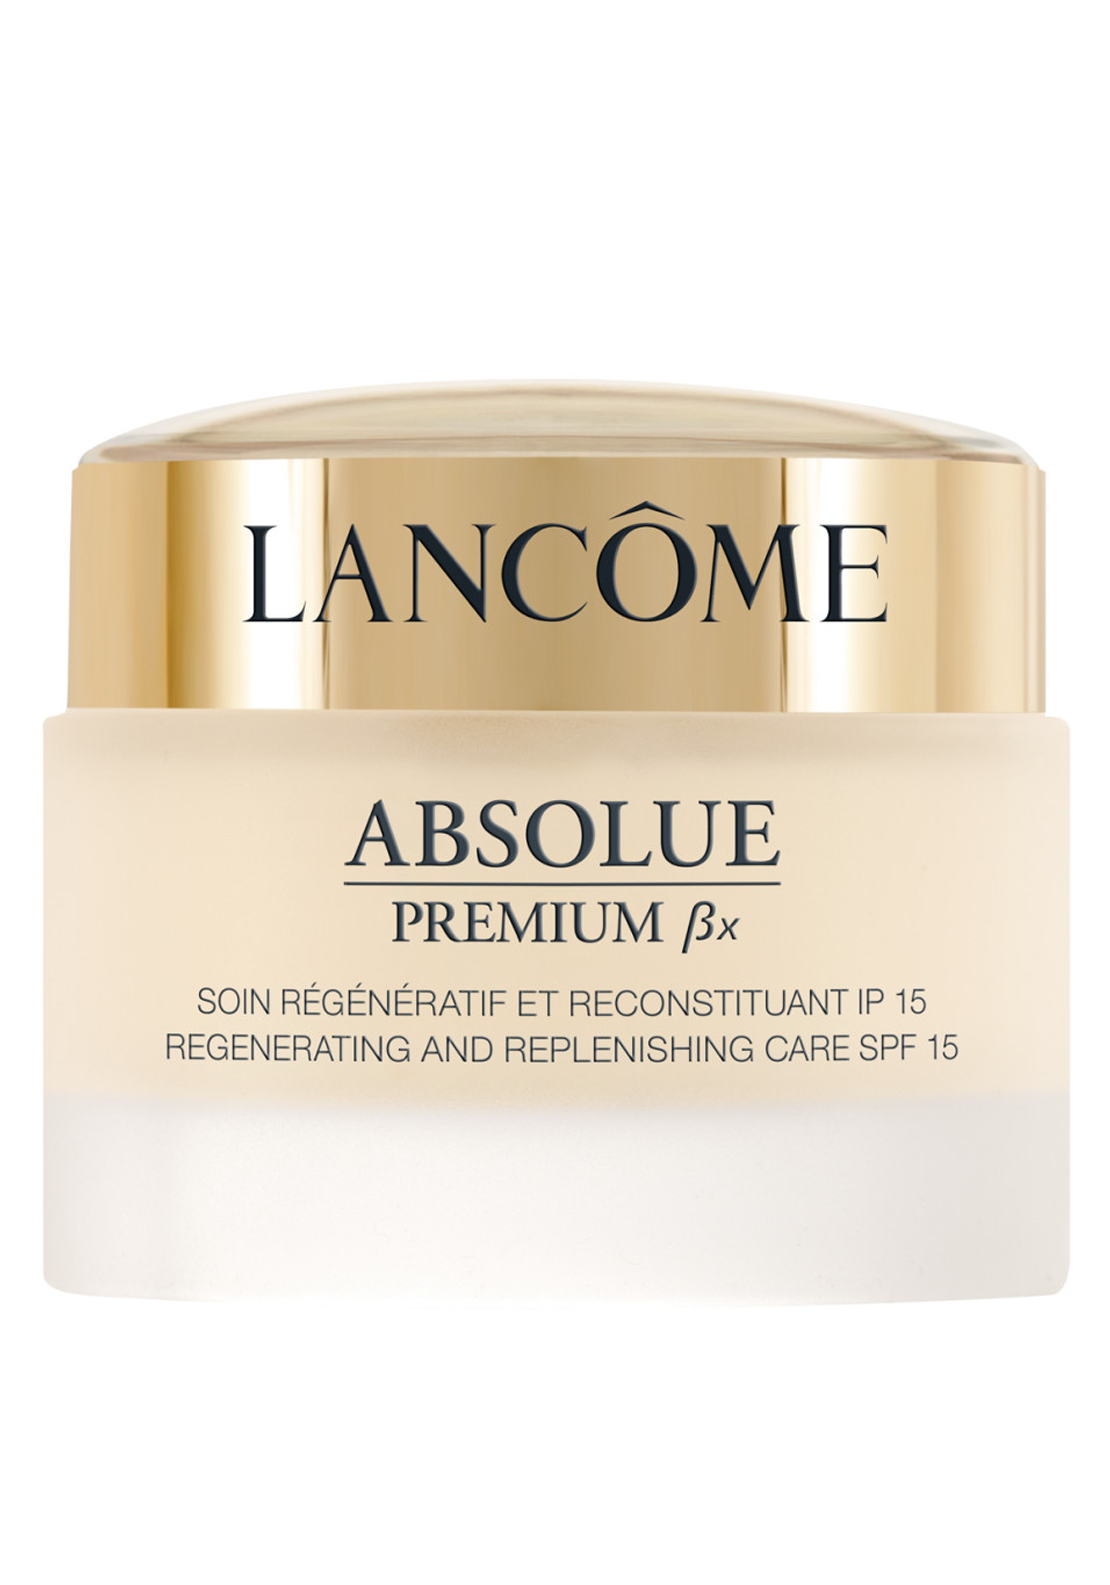 Lancome Absolue Premium with Regenerating and Replenishing Care with SPF15, 50ml